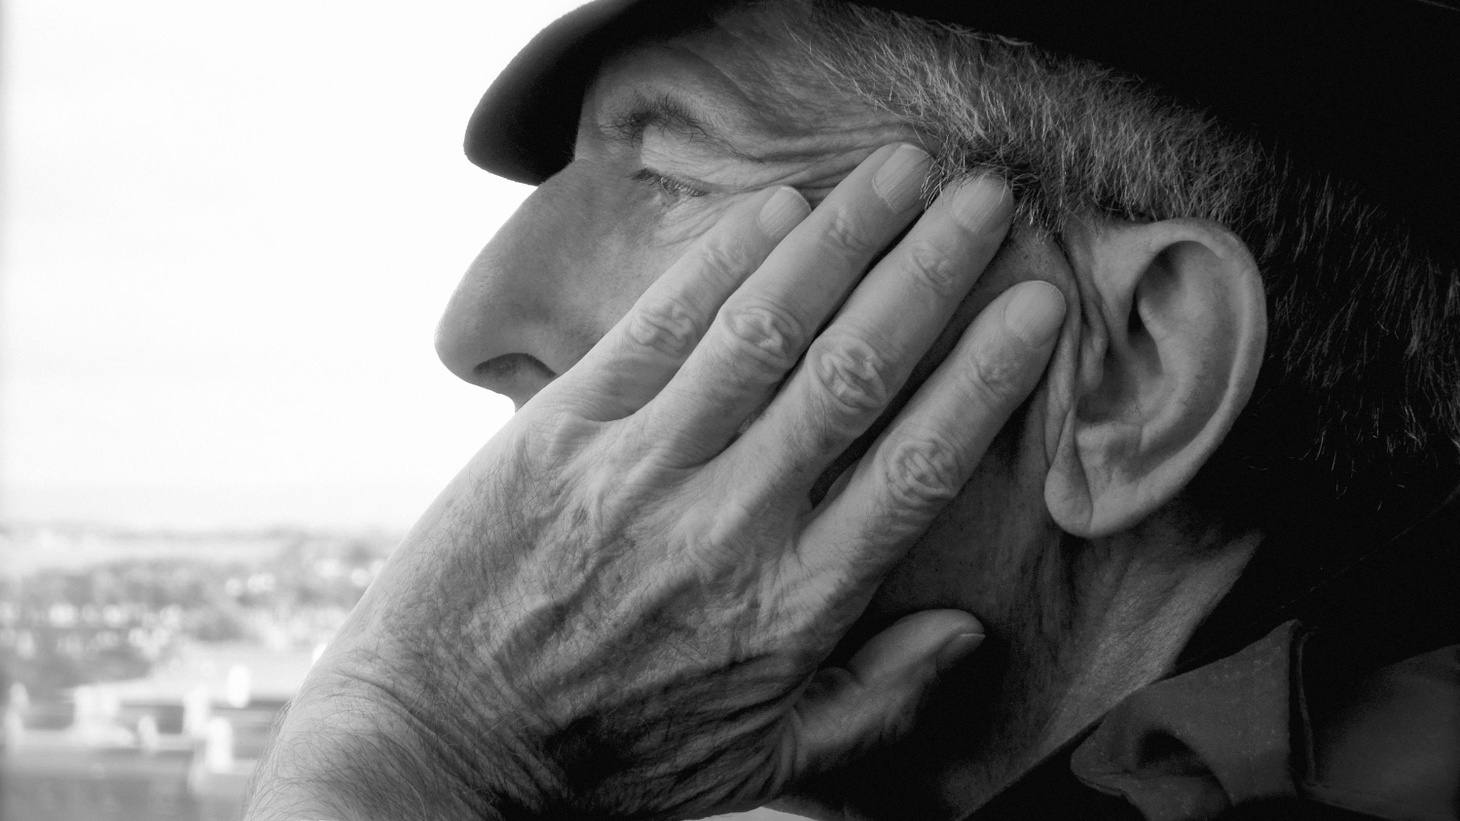 Leonard Cohen is considered by many to be the one of the greatest singer-songwriters of all time for his poetic imagery and delivery. Six decades later...